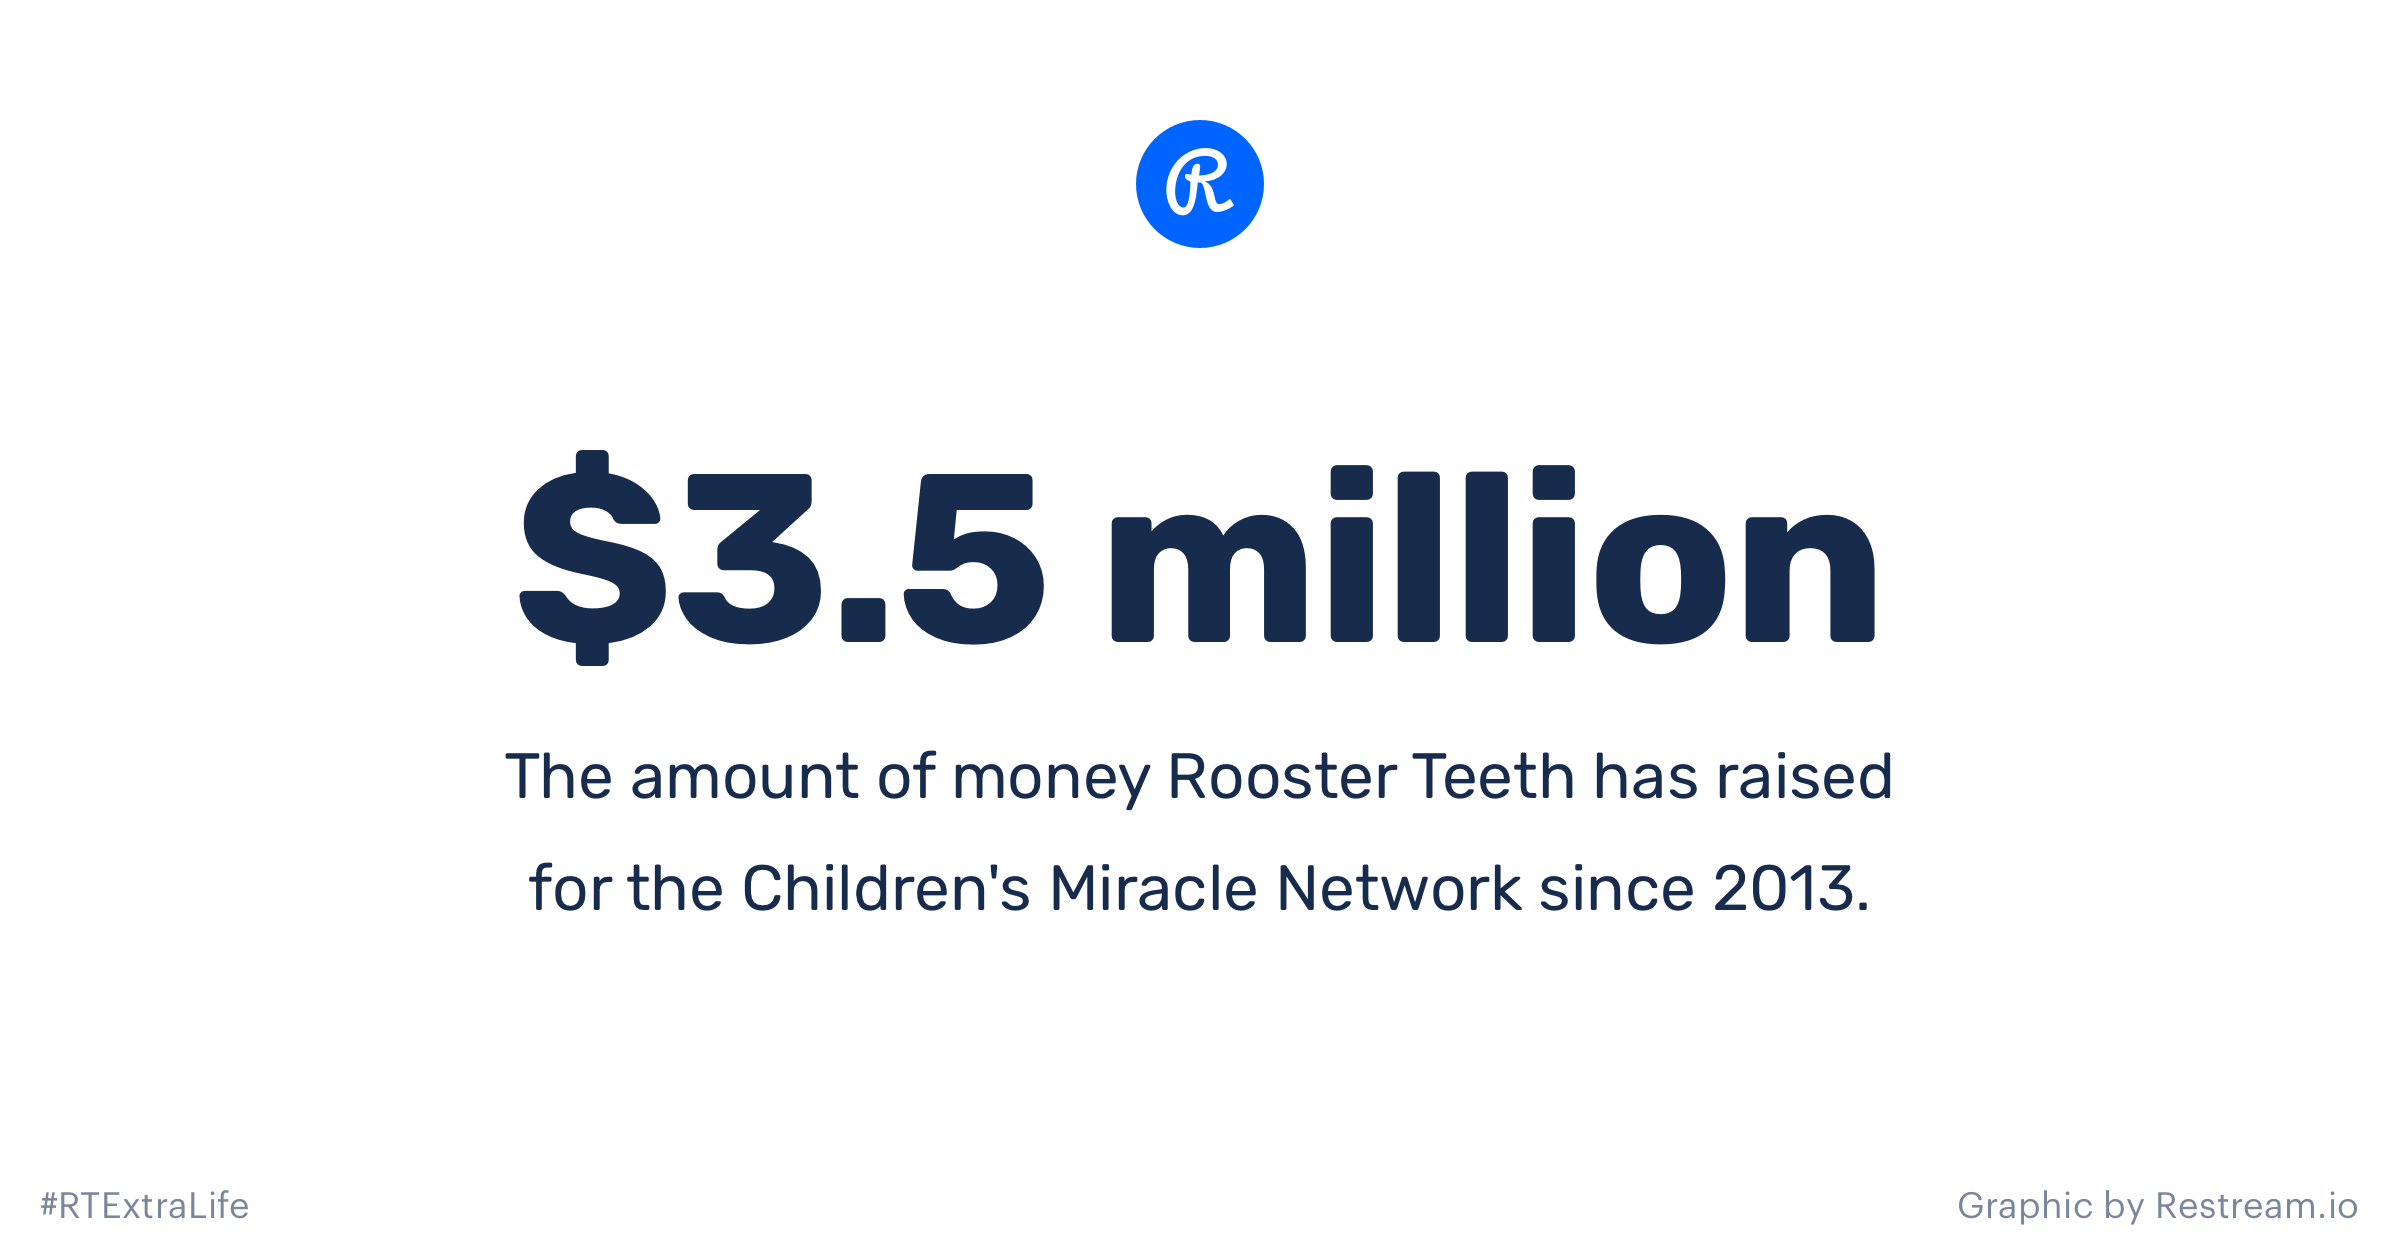 $3.5 million Rooster Teeth raised for the Children's Miracle Network since 2013